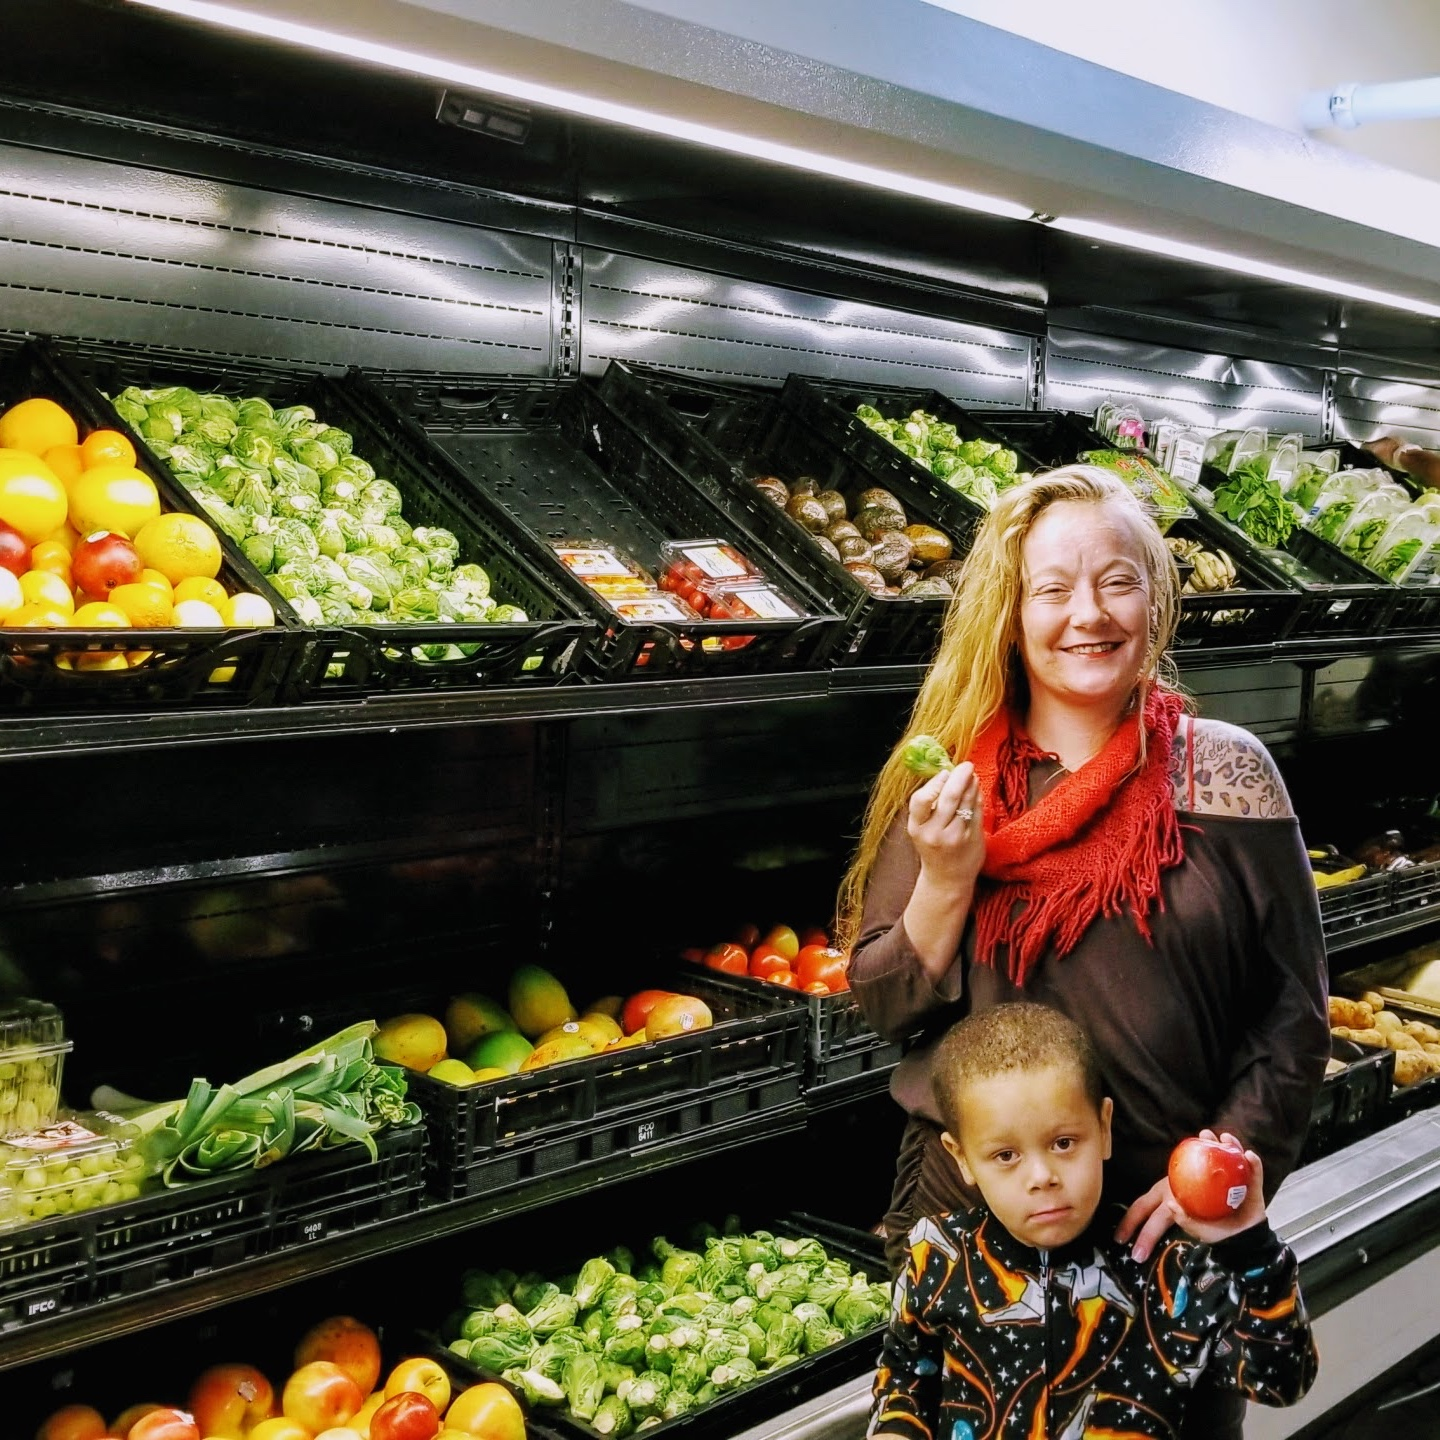 Healthy Food Access: - One of Metro Caring's most popular services is our Fresh Foods Market. Community members can shop once a month for a week's worth of ethnically diverse groceries that include fresh fruits, vegetables, dairy products, whole grains, proteins and more.